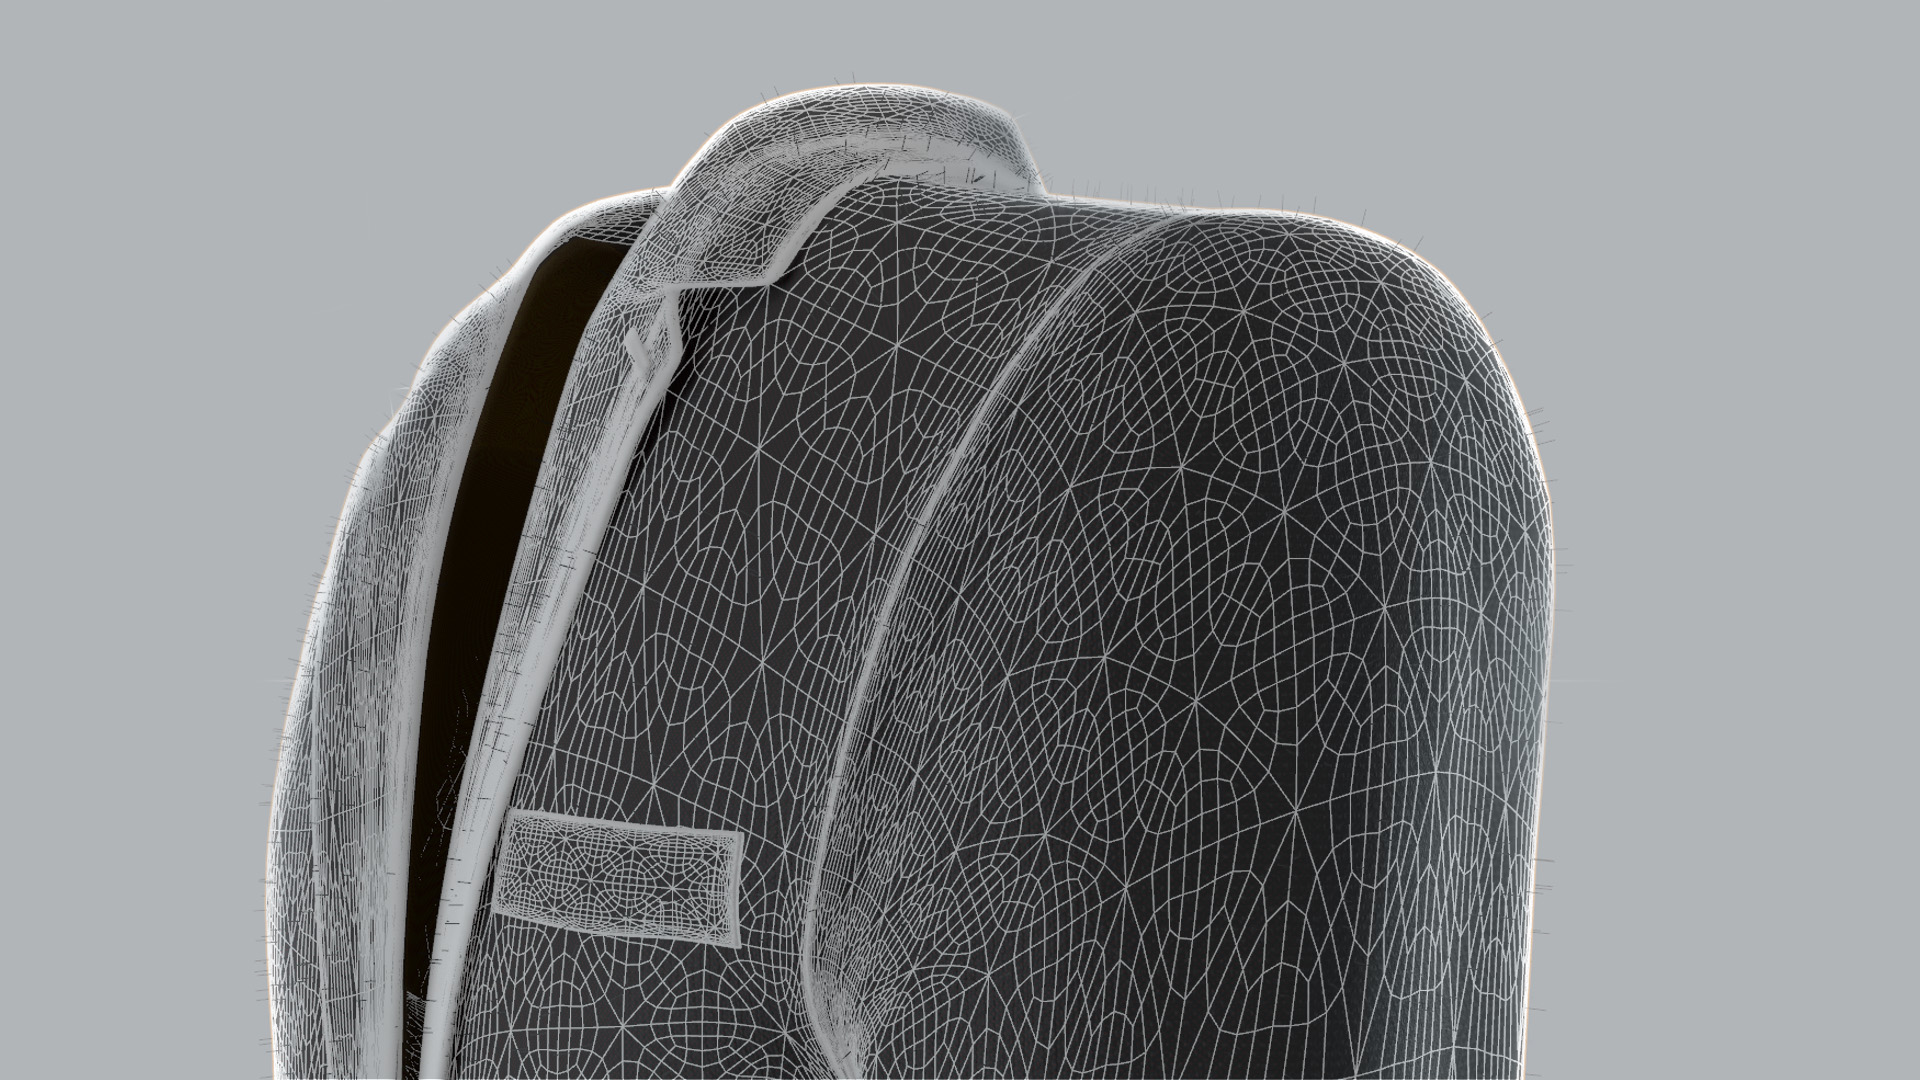 turning suit_2_closeup9_wire.jpg